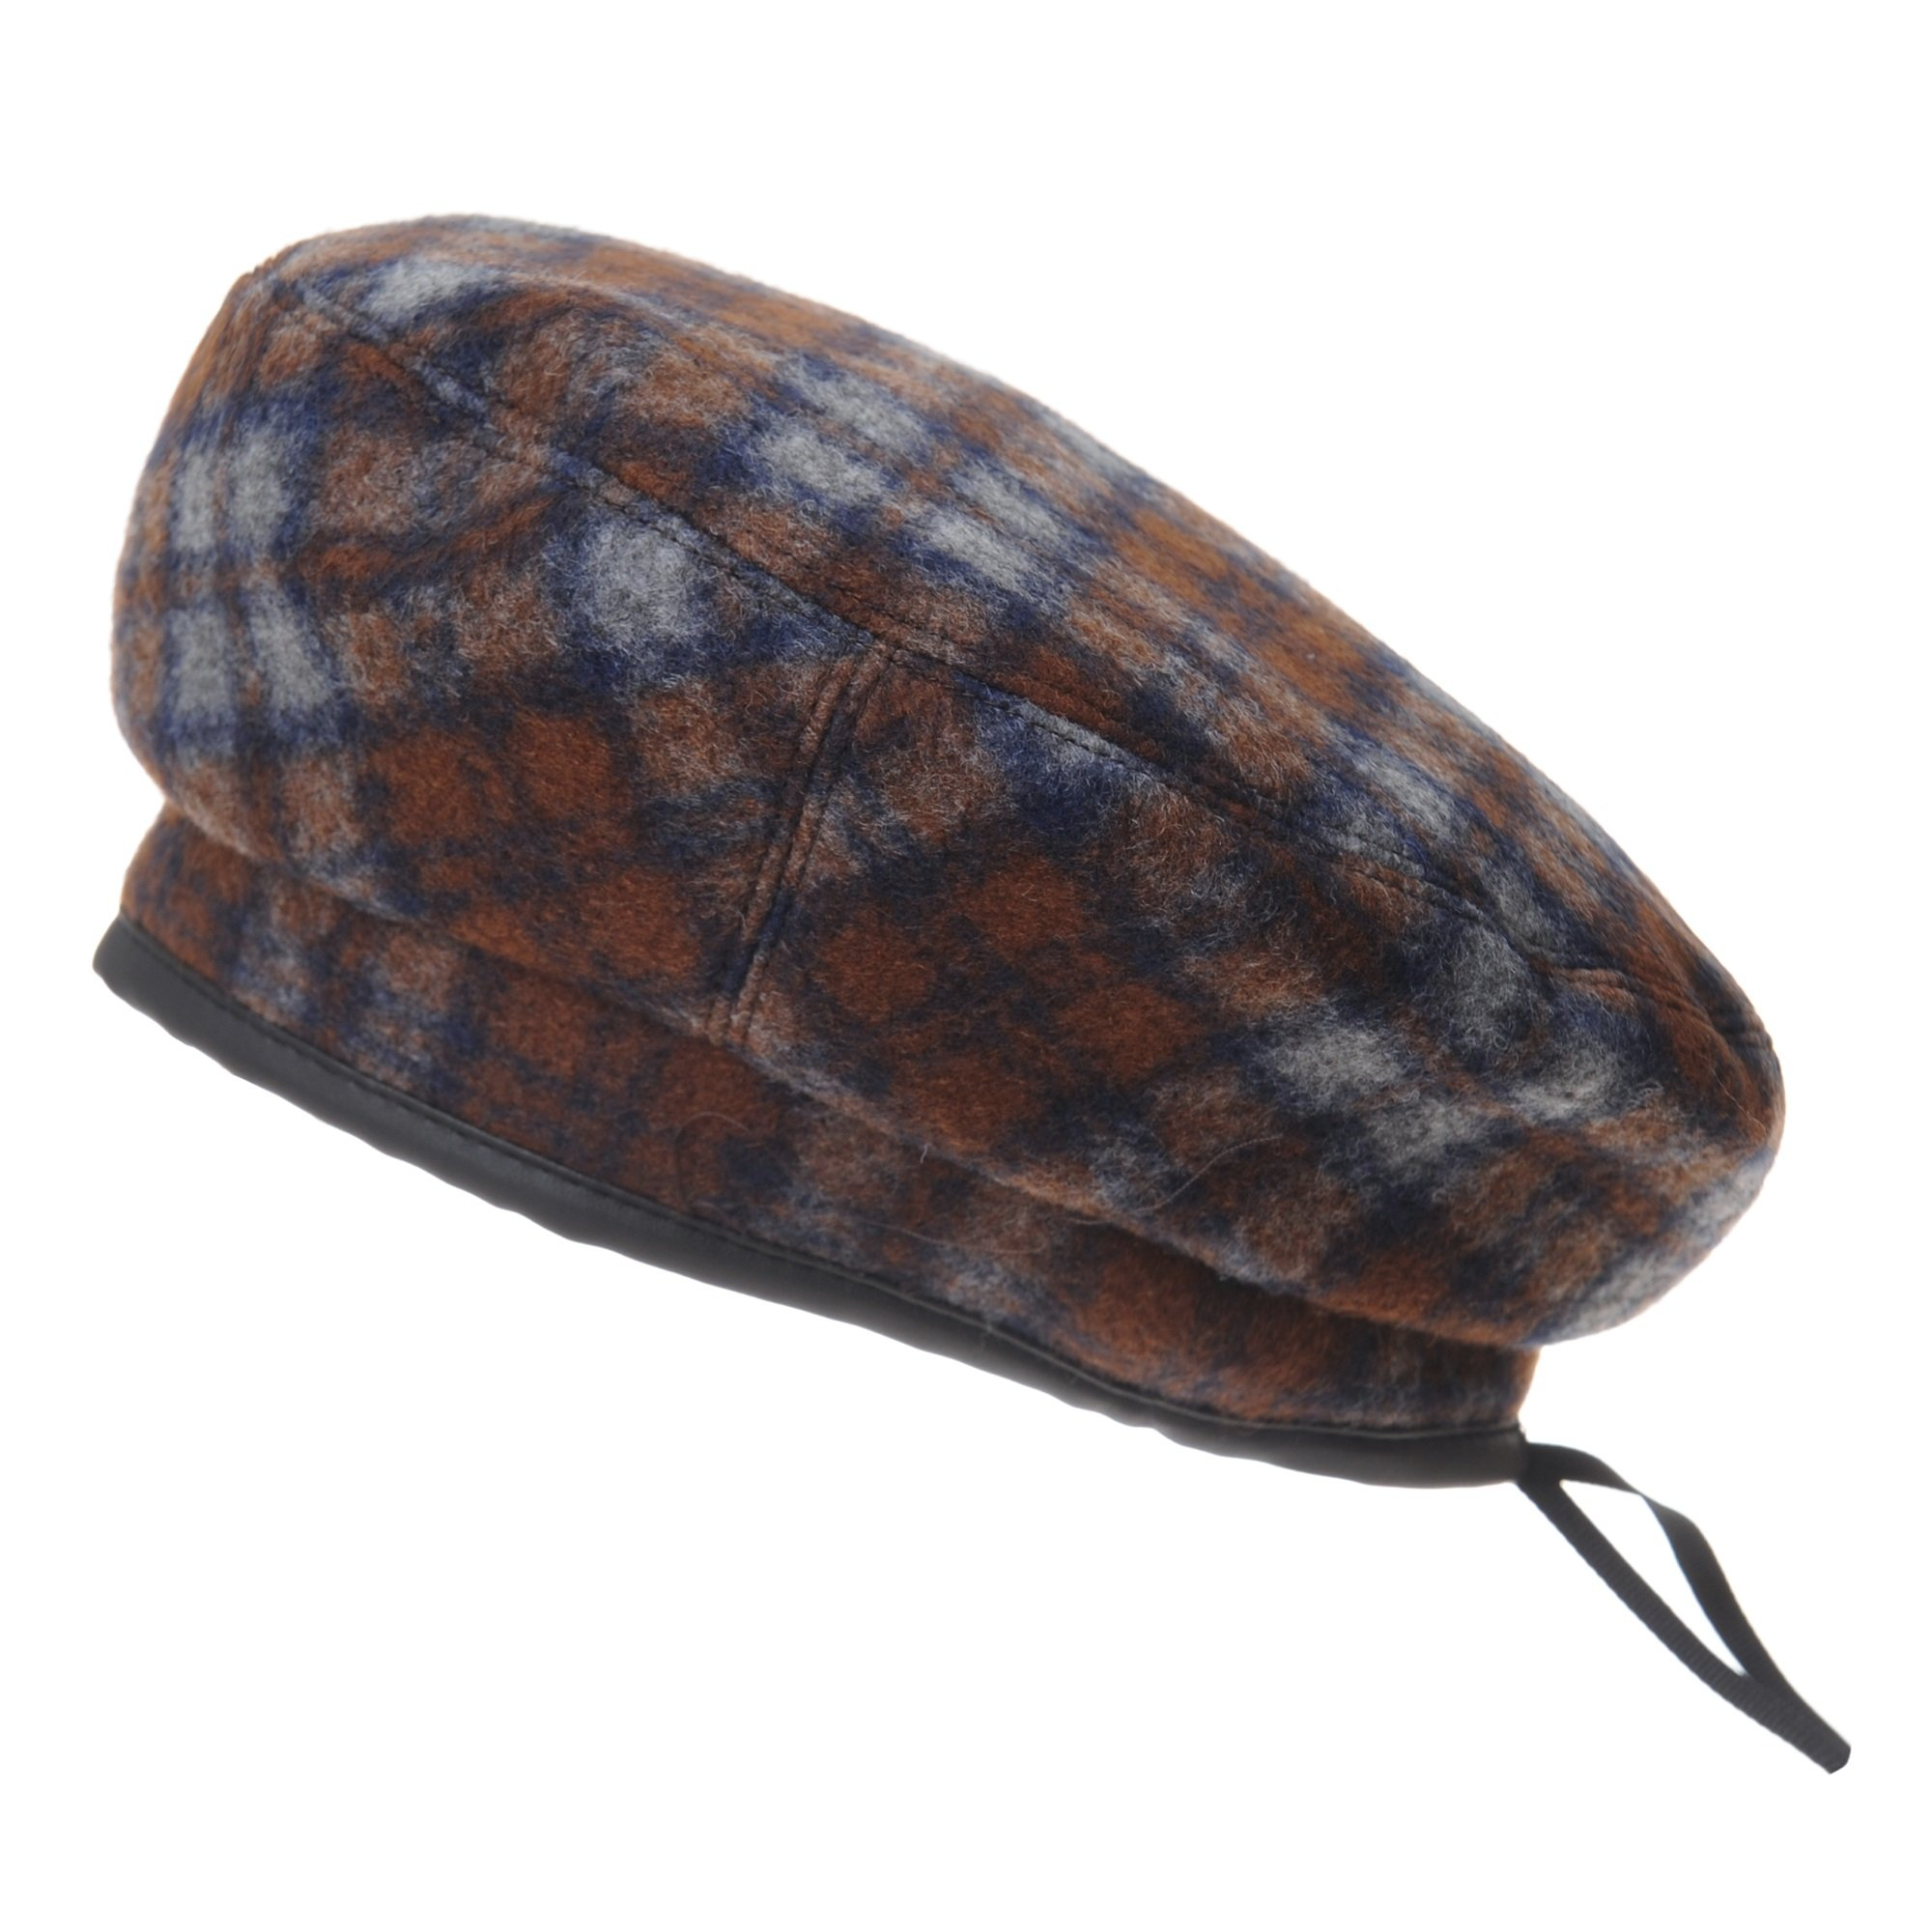 WITHMOONS Wool Beret Hat Tartan Check Leather Sweatband KR3781 (Brown)